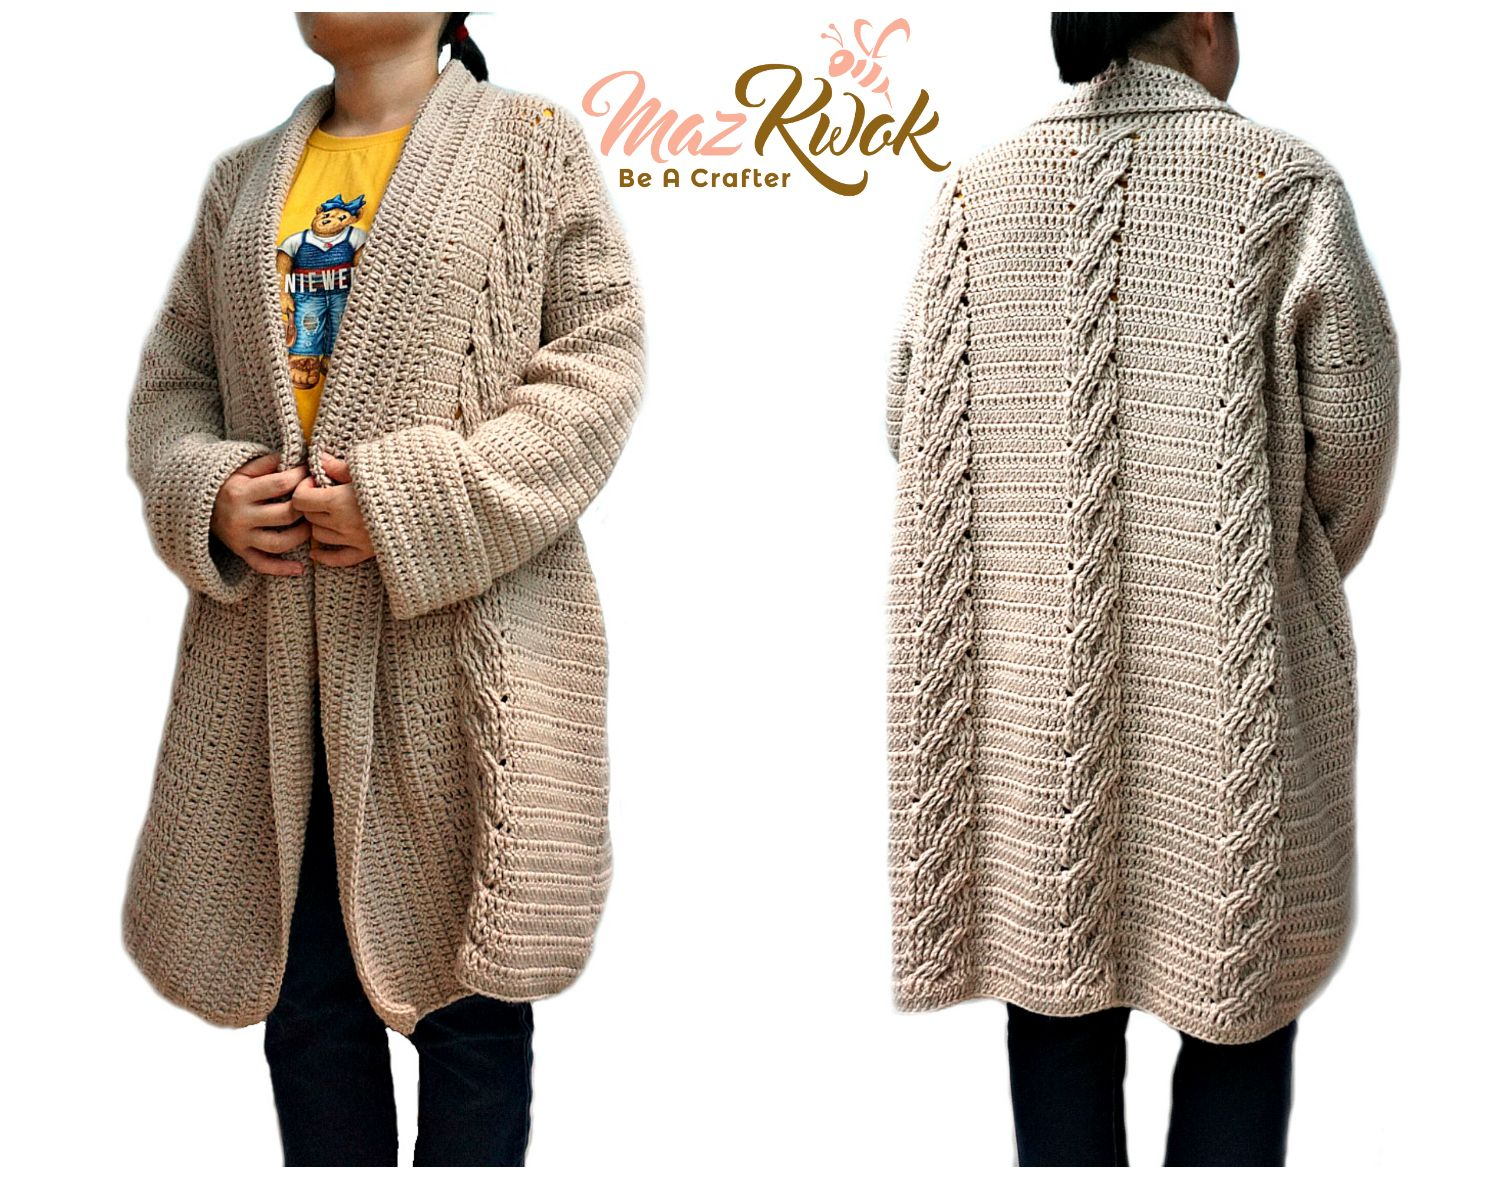 Learn to crochet an oversized and cozy cardigan with blended wool learn to crochet an oversized and cozy cardigan with blended wool yarn in this free crochet bankloansurffo Choice Image